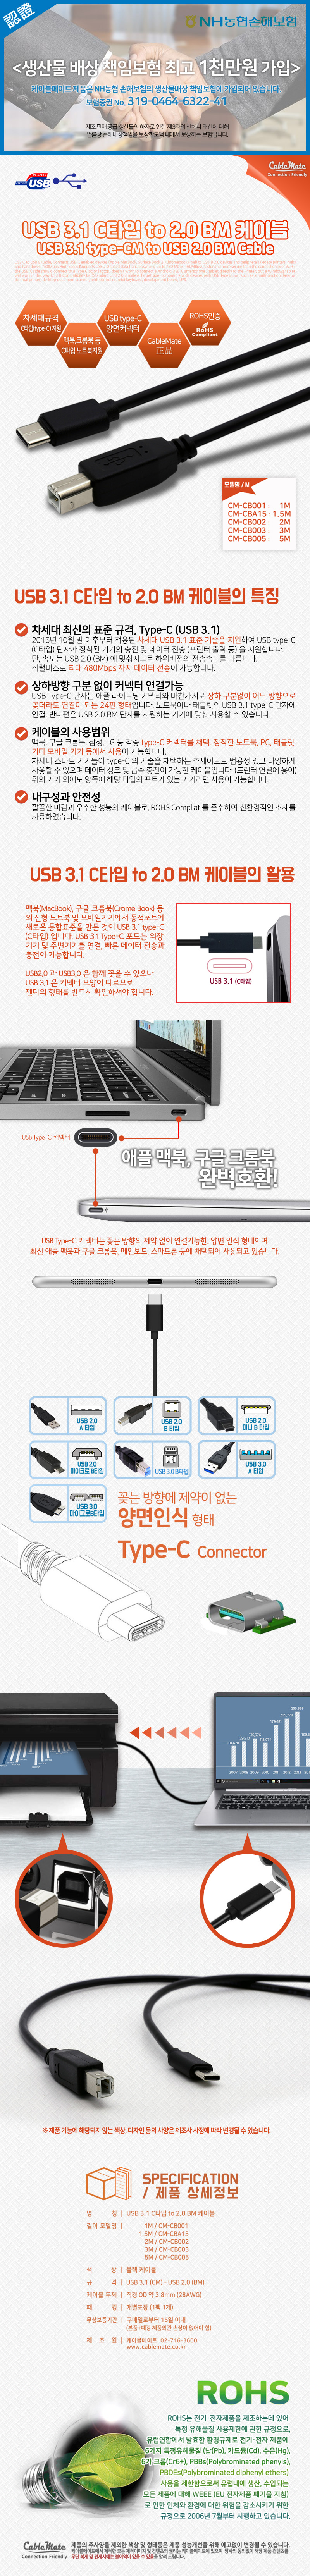 CABLEMATE USB 2.0 Type C to Type B 케이블 (CM-CB003, 3m)